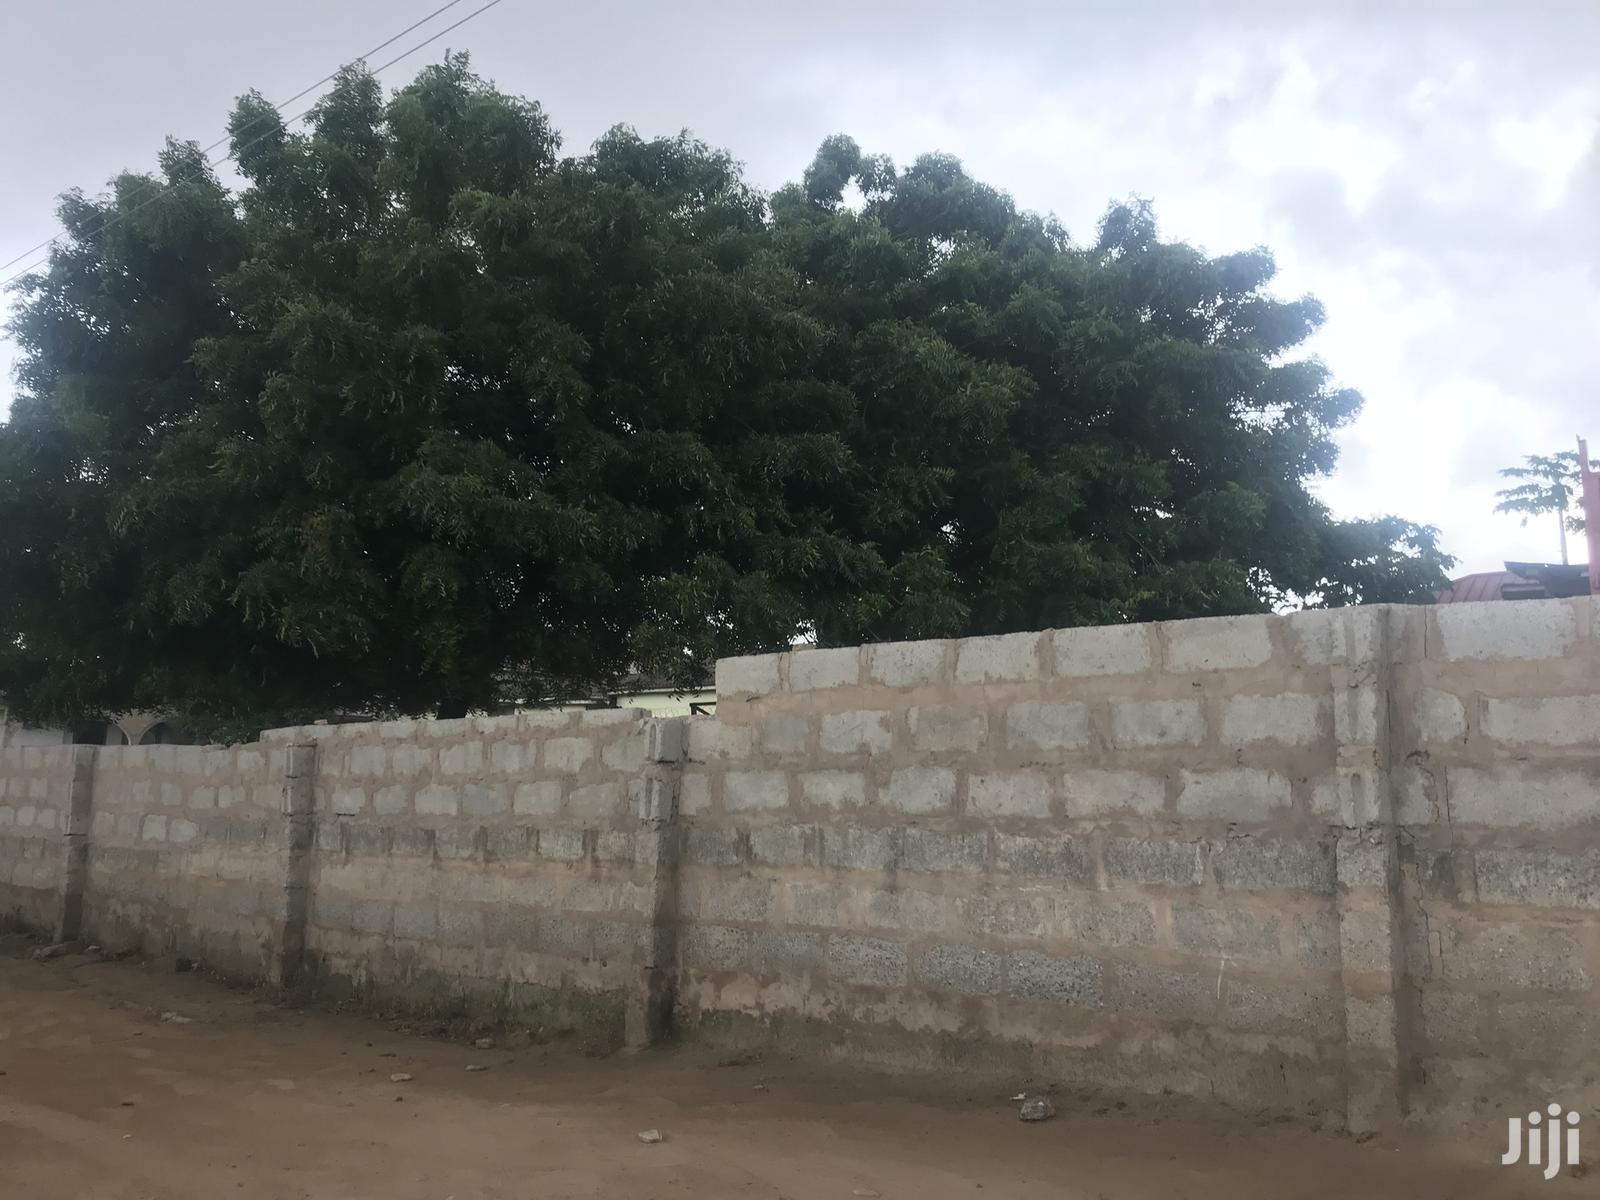 One Plot of Land for Sale at Nmai-Dzorn | Land & Plots For Sale for sale in East Legon, Greater Accra, Ghana